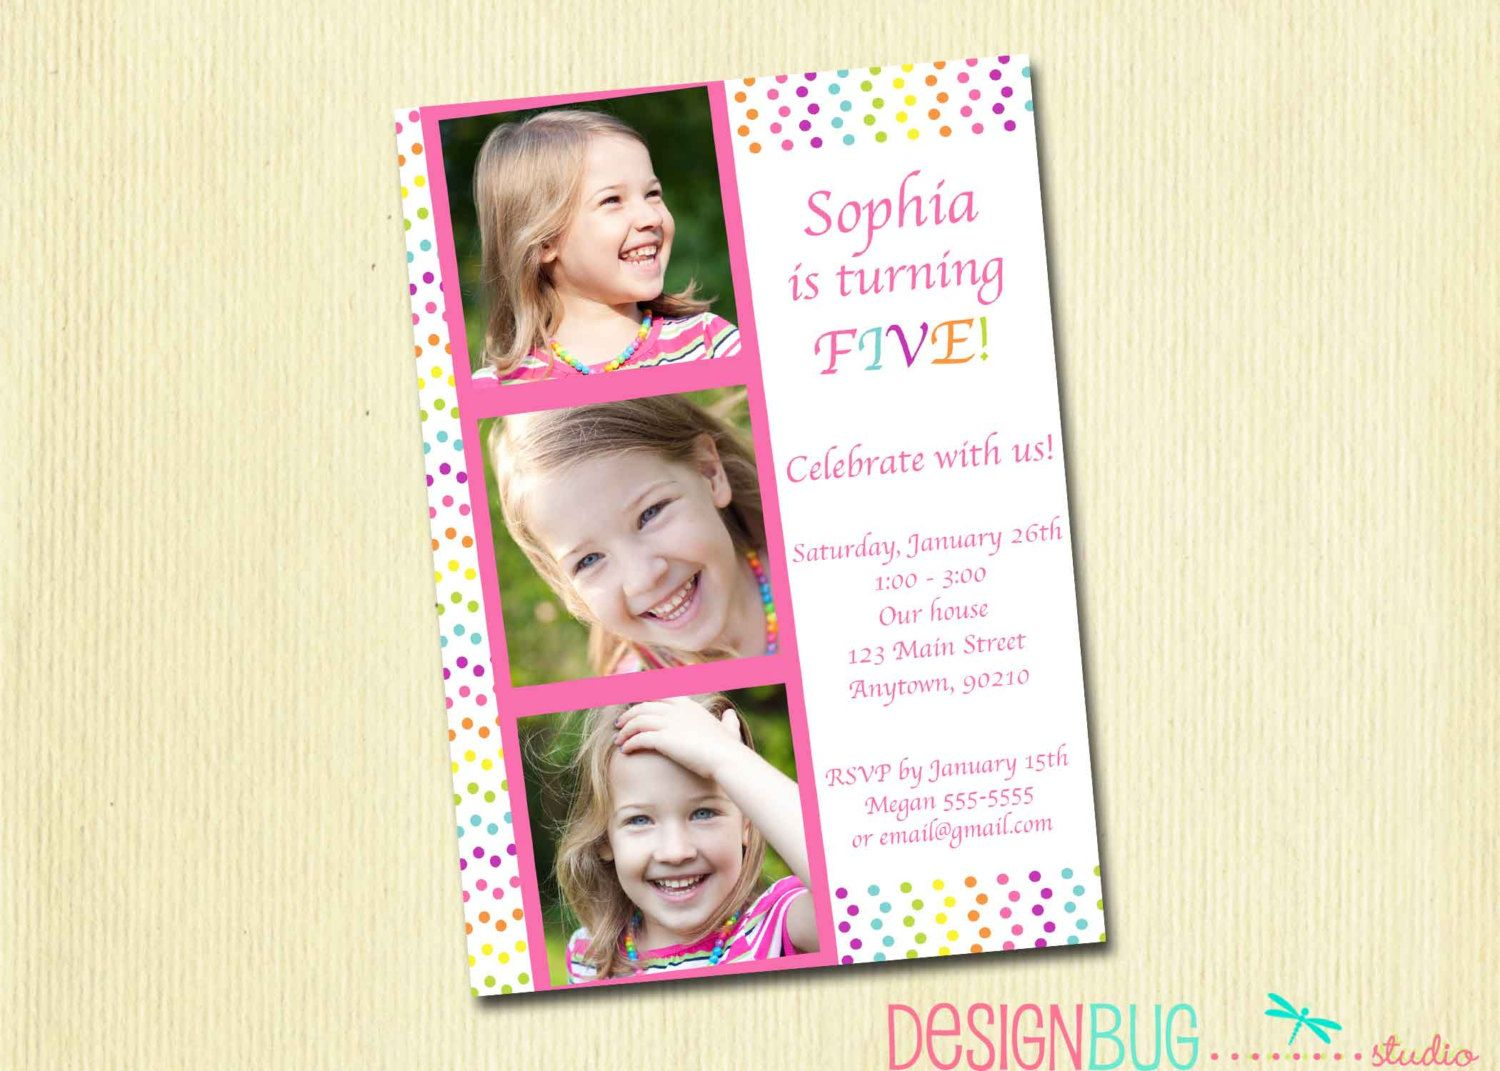 handmadest birthday party invitations%0A Birthday party ideas